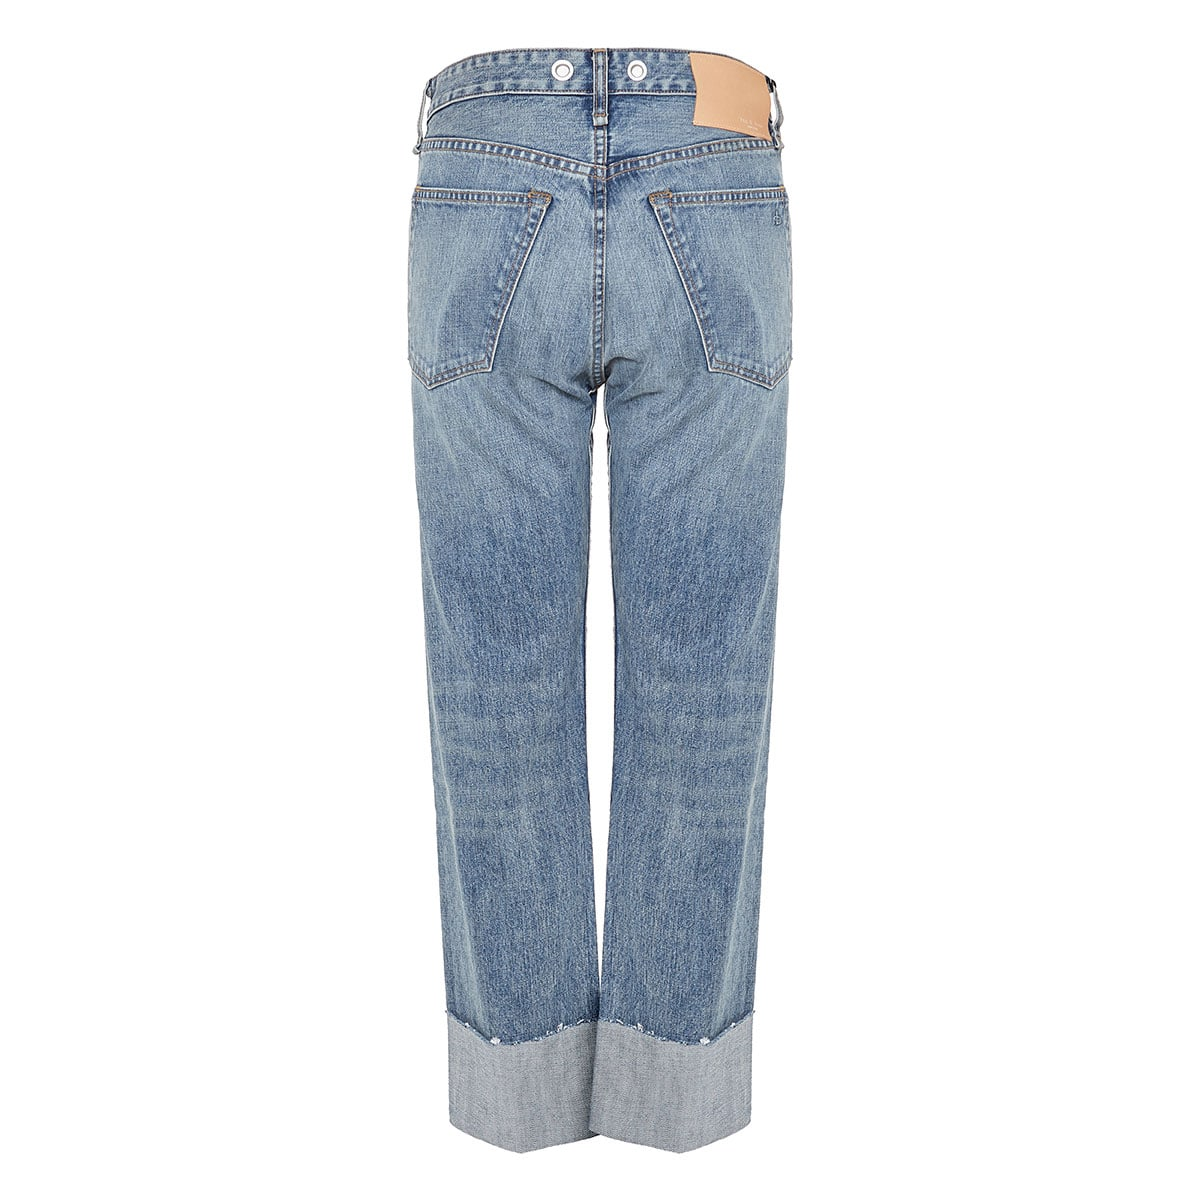 Maya loose-fit distressed jeans